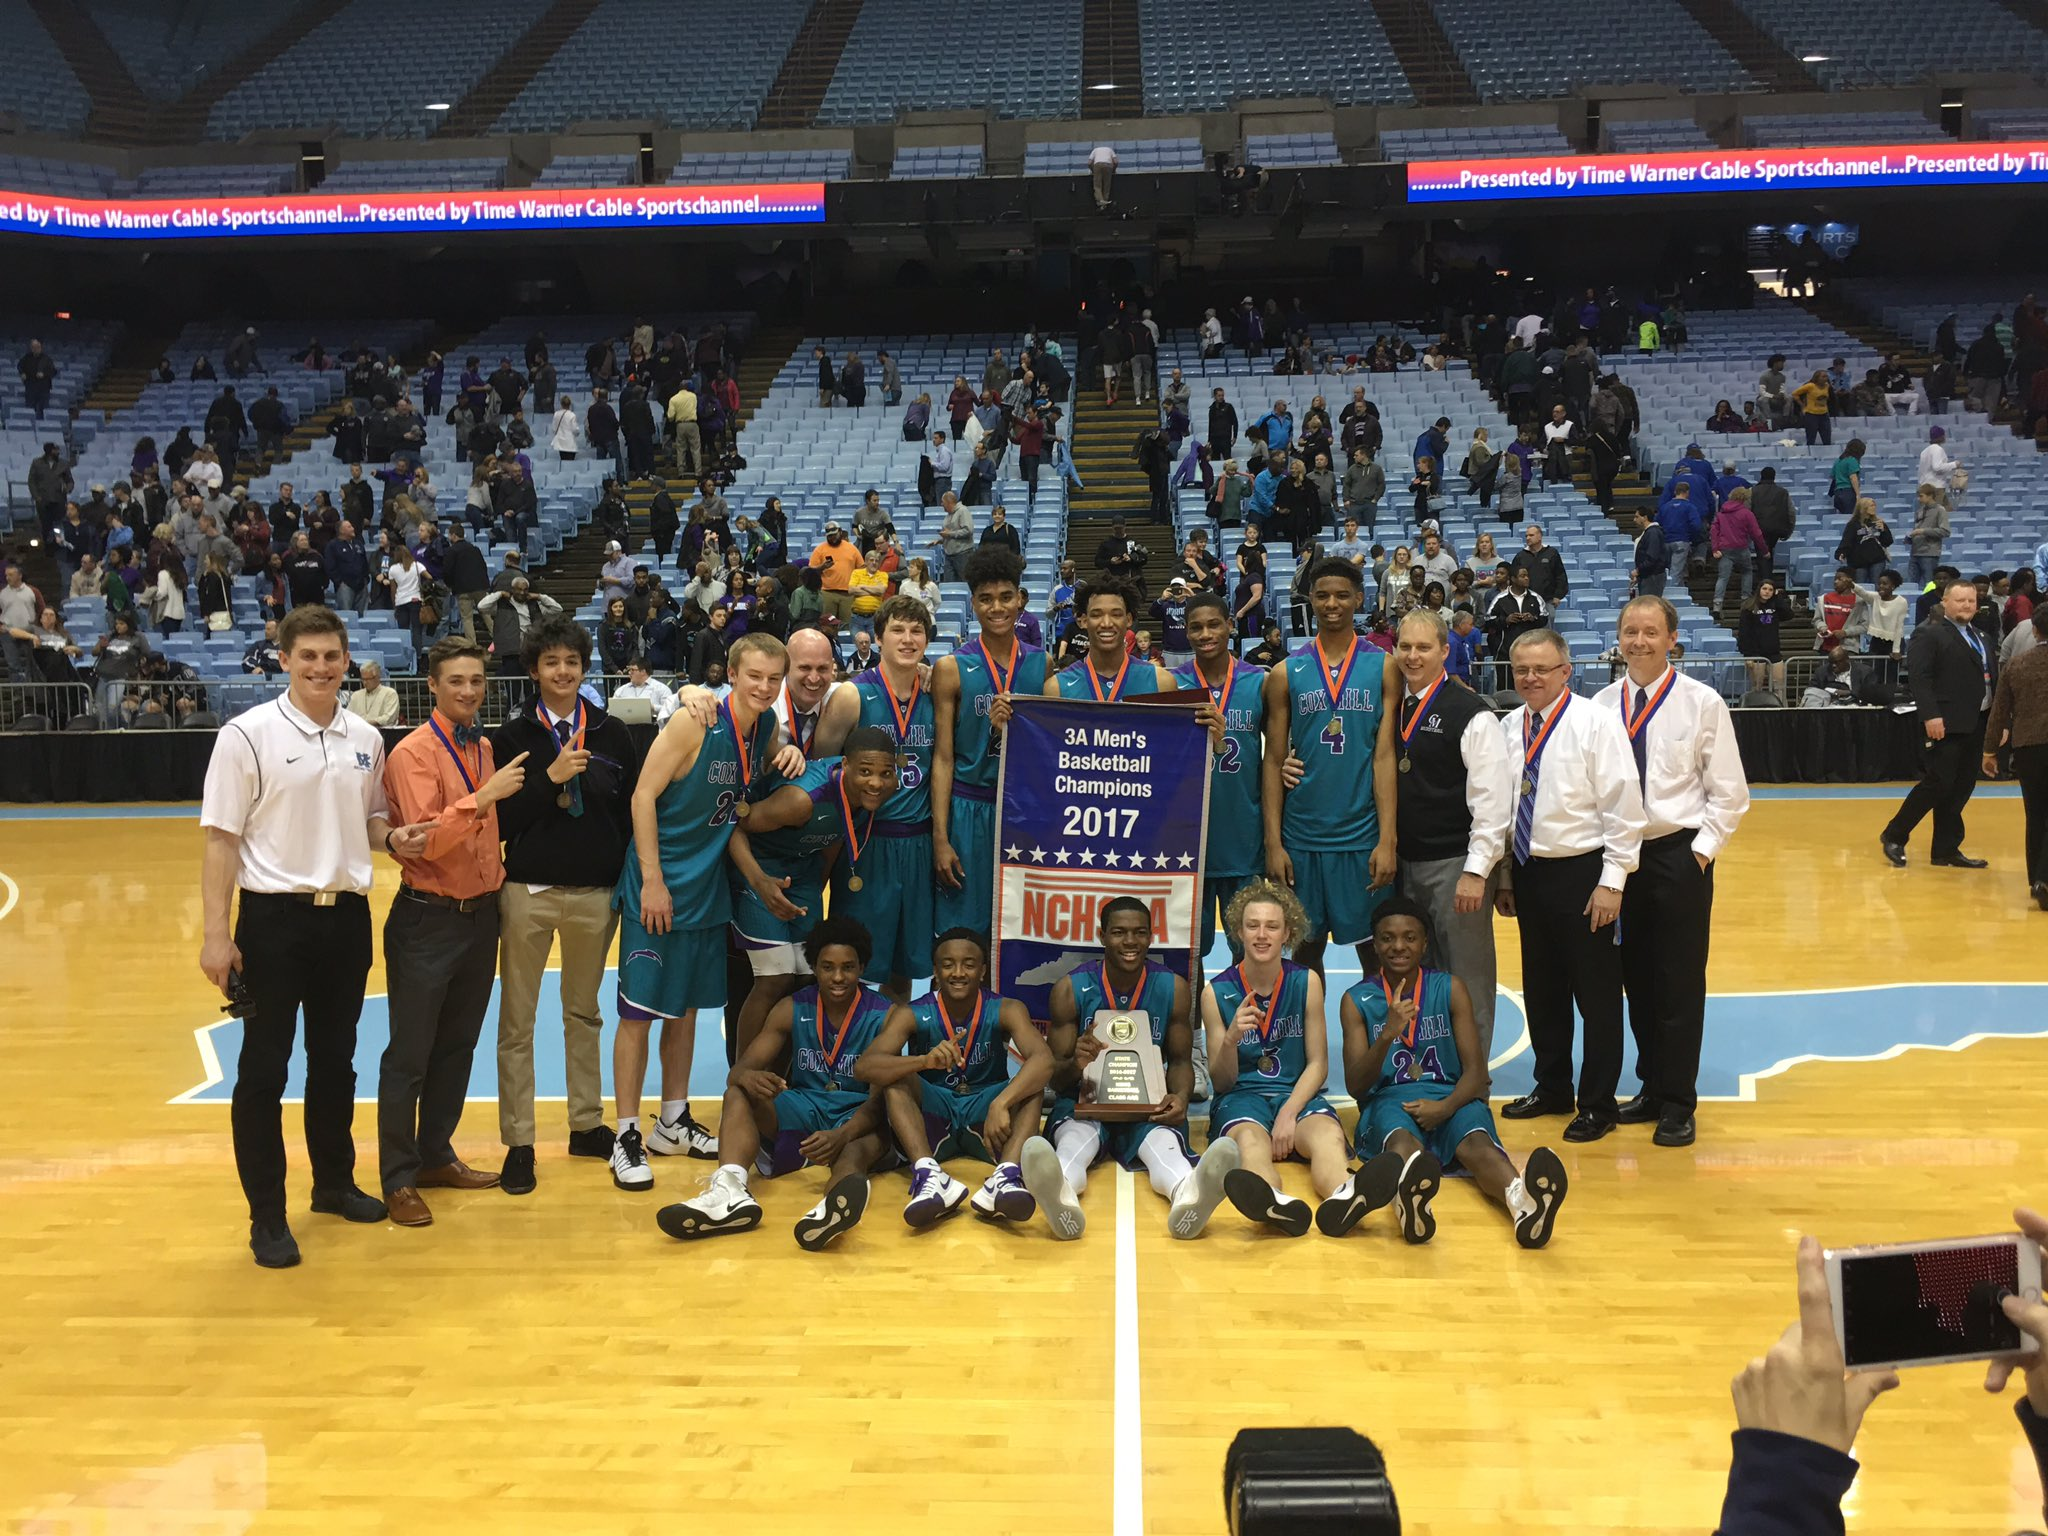 Welcome the State Champion Chargers back home!! Team will be arriving around 12:15 at Cox Mill!! Come out and show support! ⚡️🏀🔥🏆 https://t.co/EY6bf28JUo